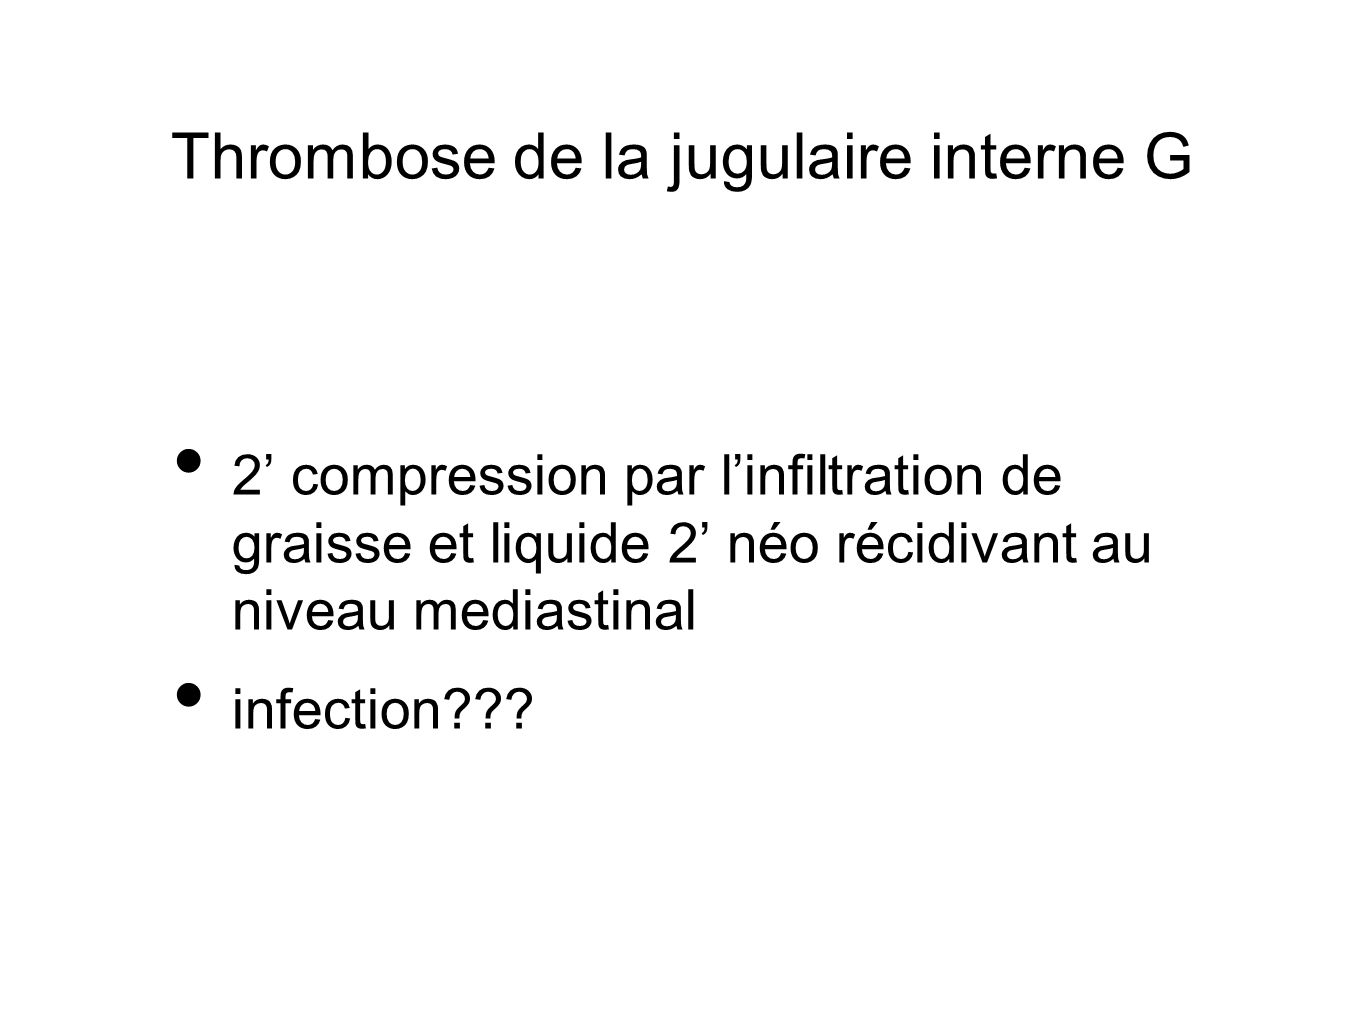 Thrombose de la jugulaire interne G